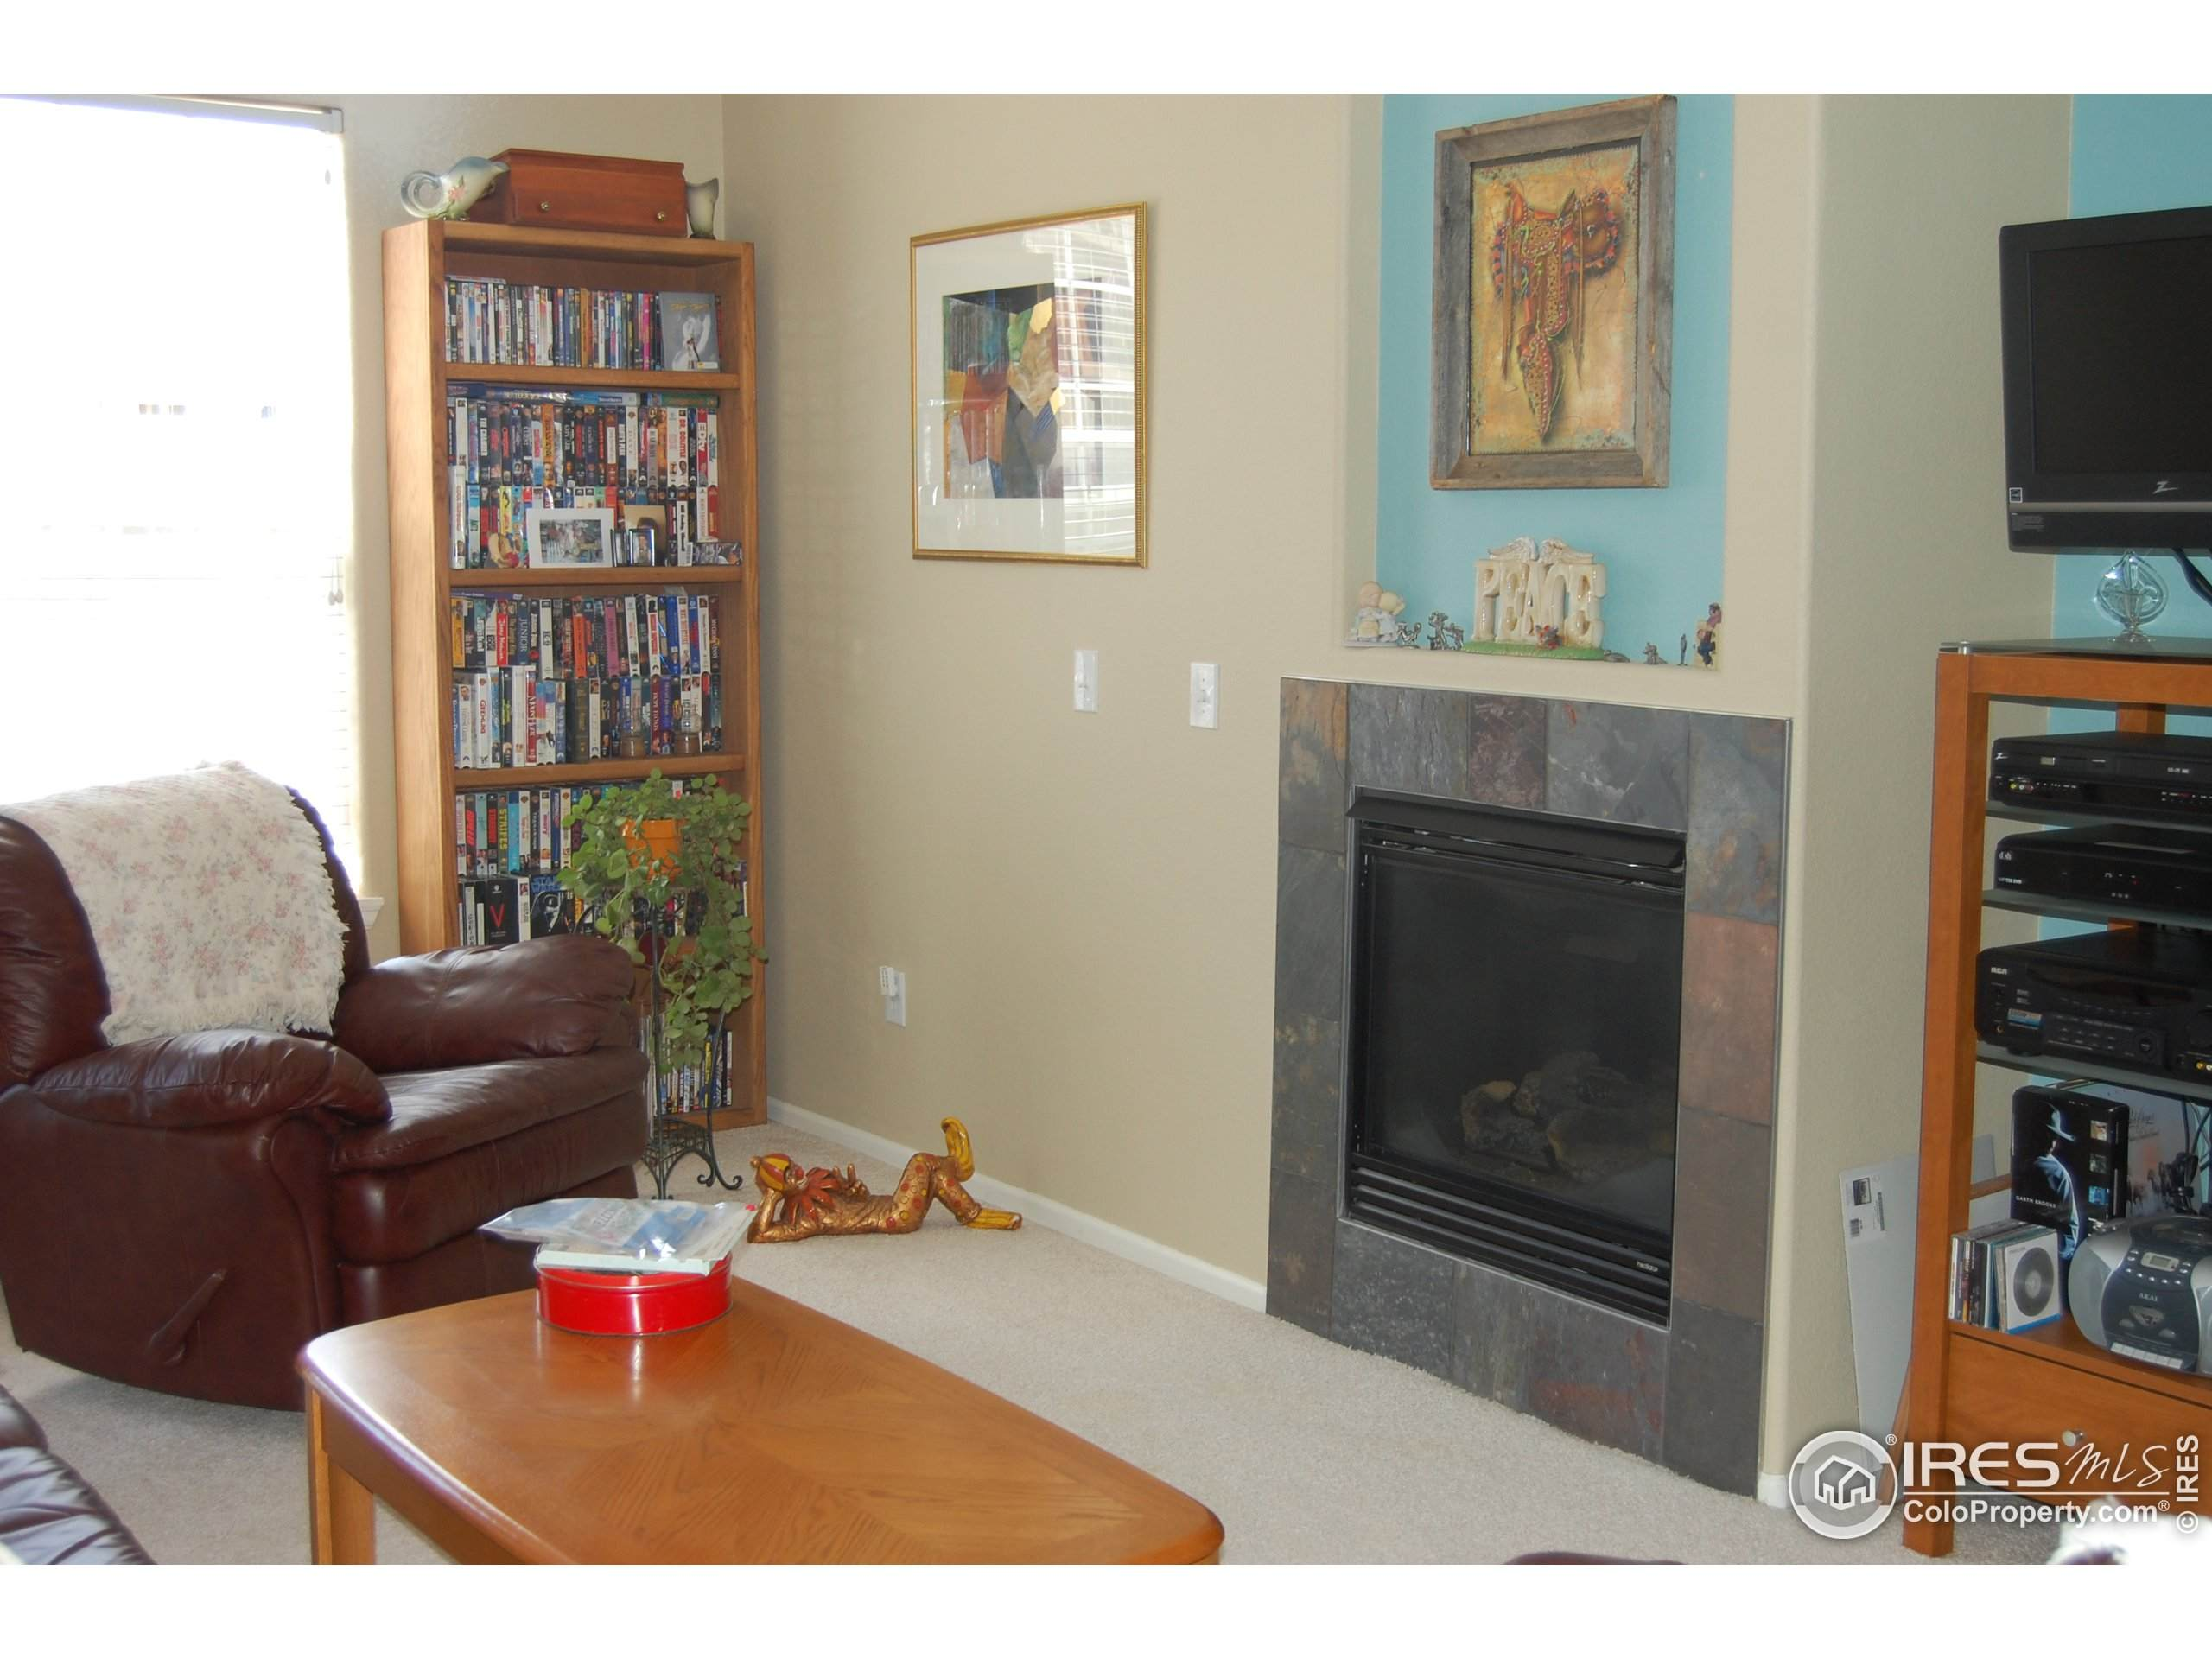 2860 Colby Dr, Boulder, CO 80305 (MLS #931608) :: Hub Real Estate